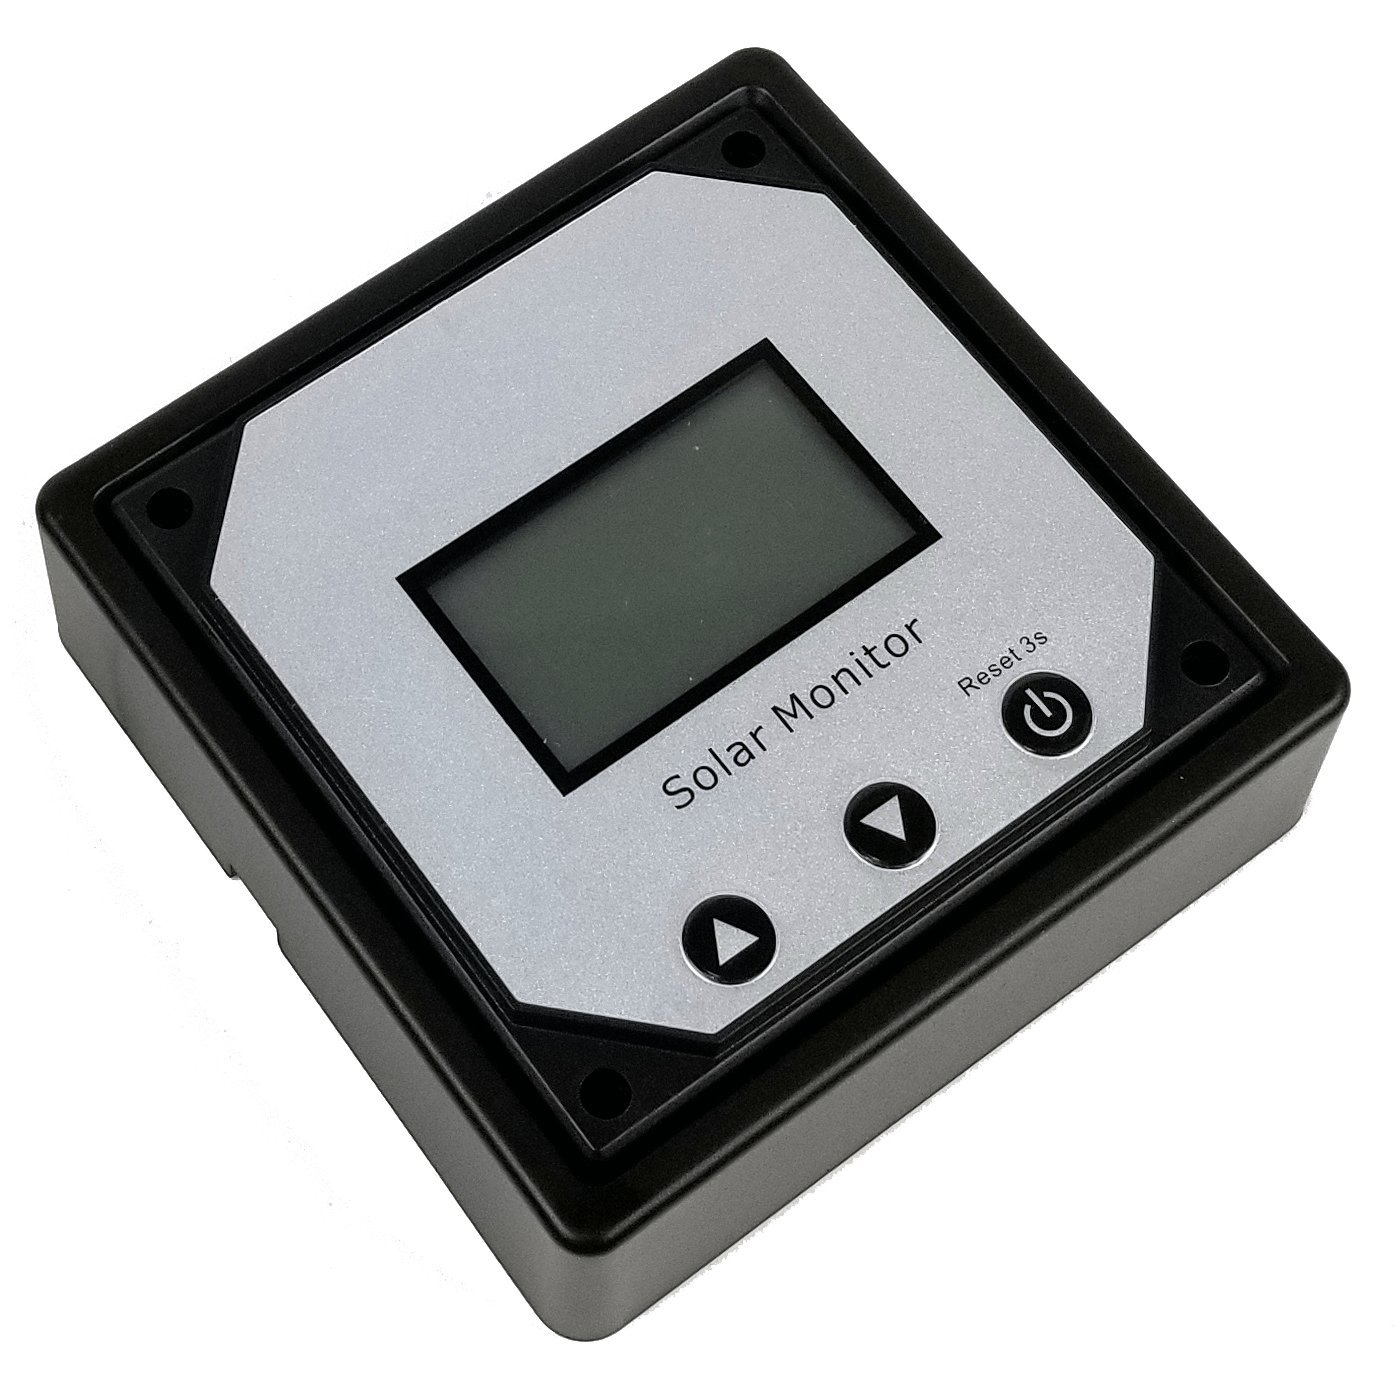 Display LCD Monitor for RV Solar Charge Controller, View and Set Parameter